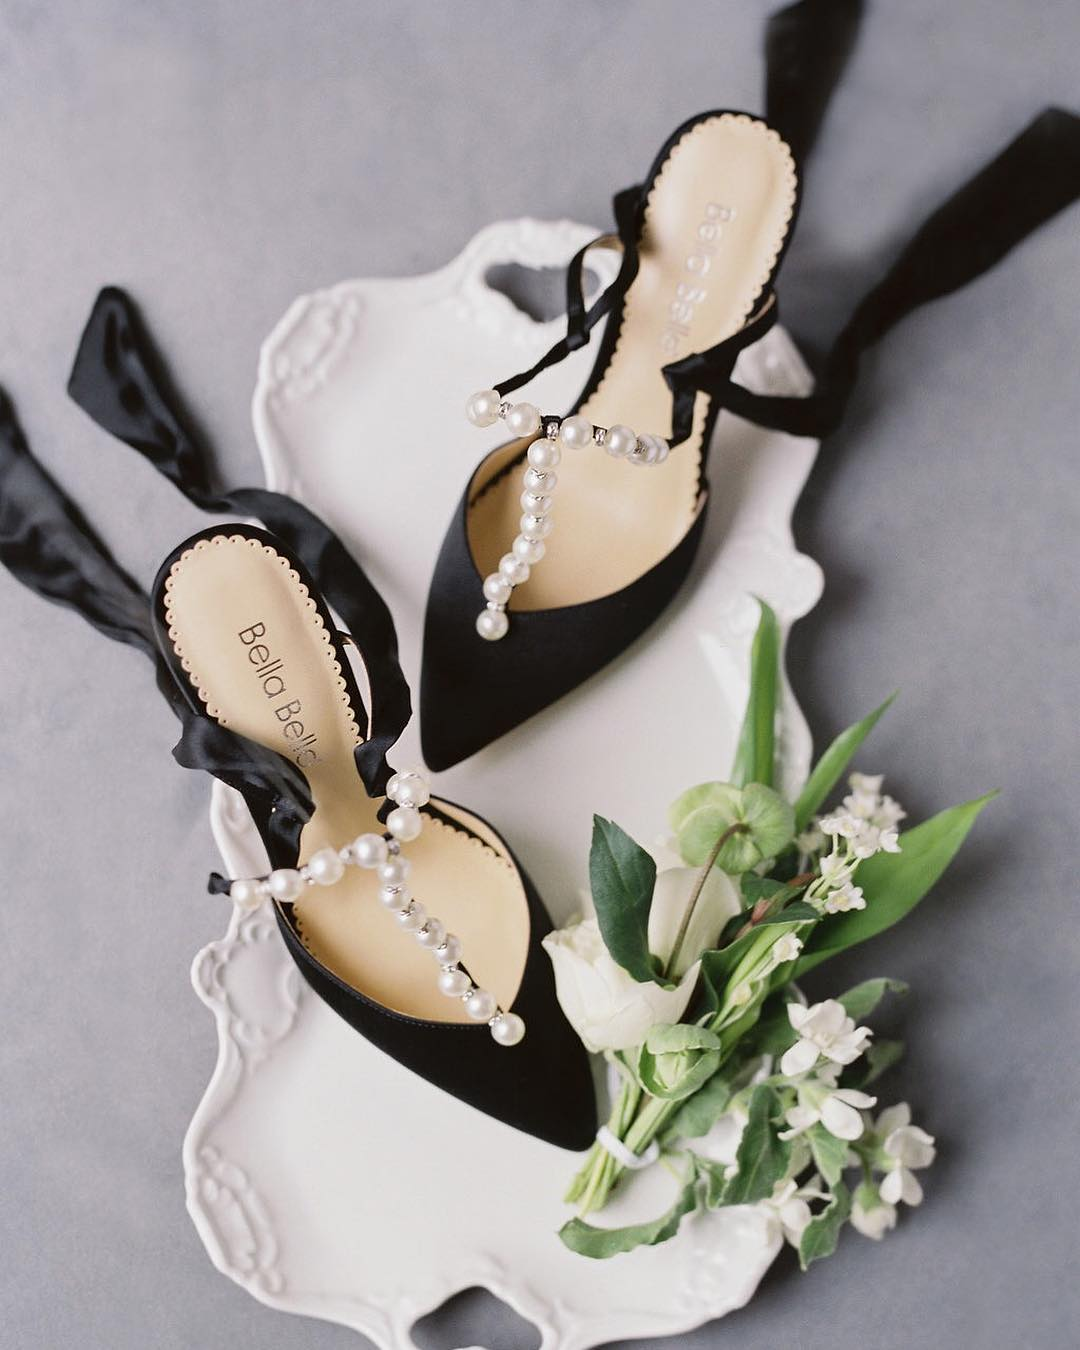 bella belle shoes black and pearl heels for a museum wedding.jpg